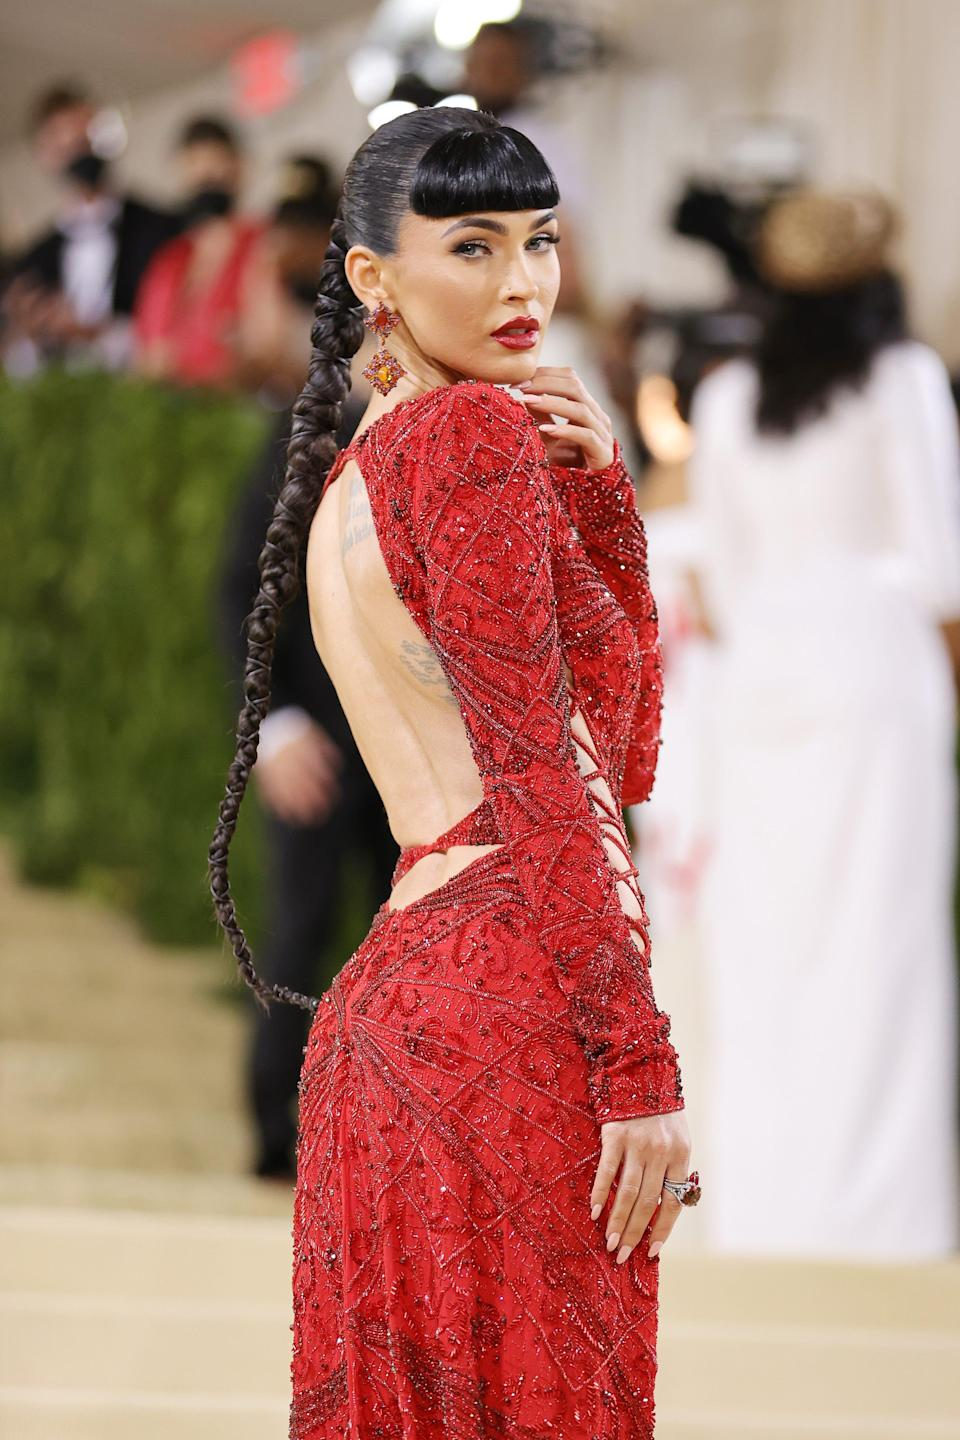 NEW YORK, NEW YORK - SEPTEMBER 13: Megan Fox attends The 2021 Met Gala Celebrating In America: A Lexicon Of Fashion at Metropolitan Museum of Art on September 13, 2021 in New York City. (Photo by Mike Coppola/Getty Images) ORG XMIT: 775705347 ORIG FILE ID: 1340139716